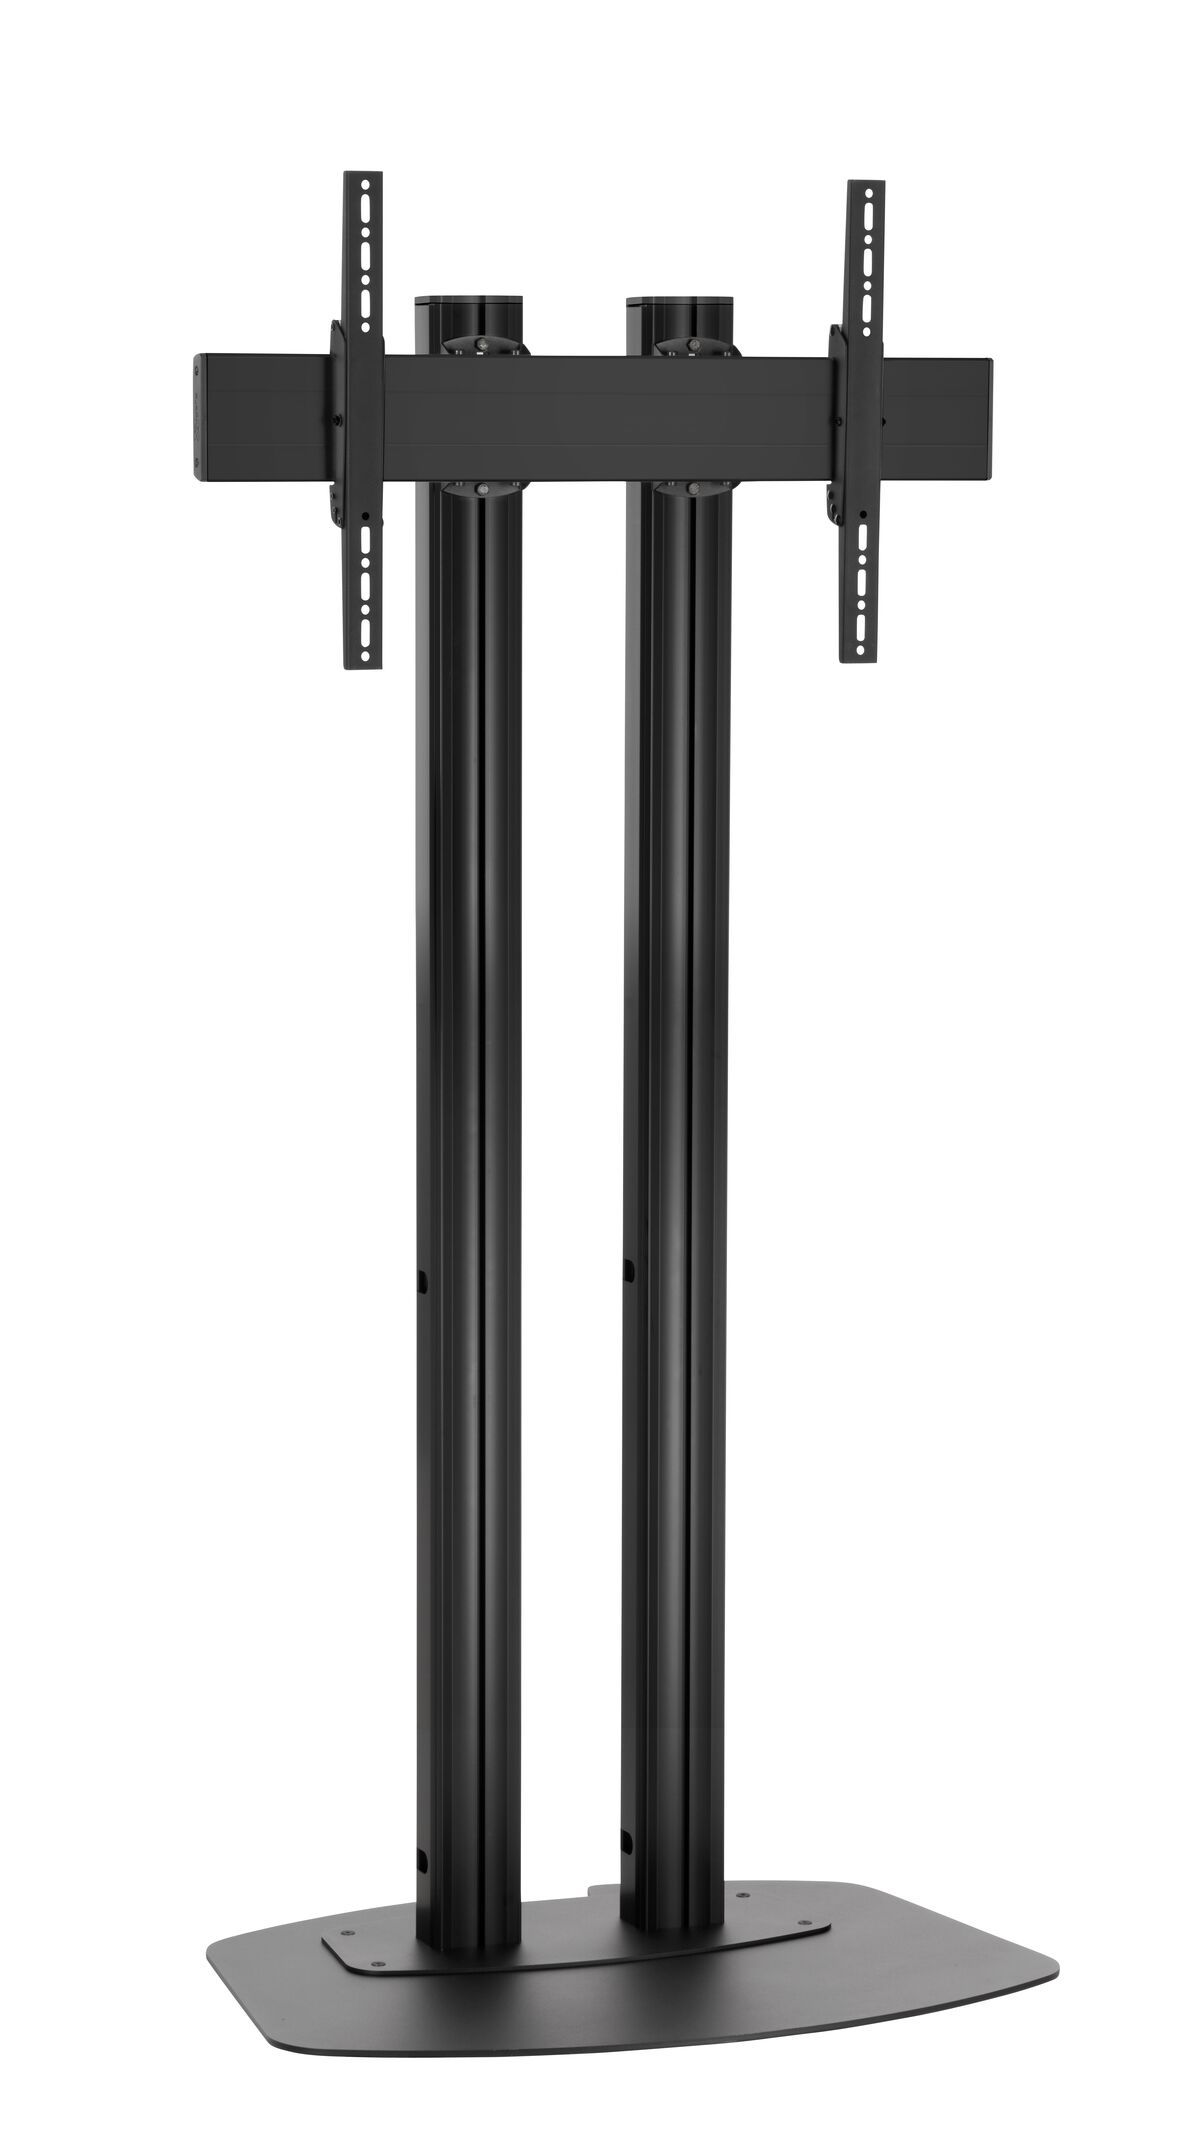 Vogel's FD2064B Floor stand - Product